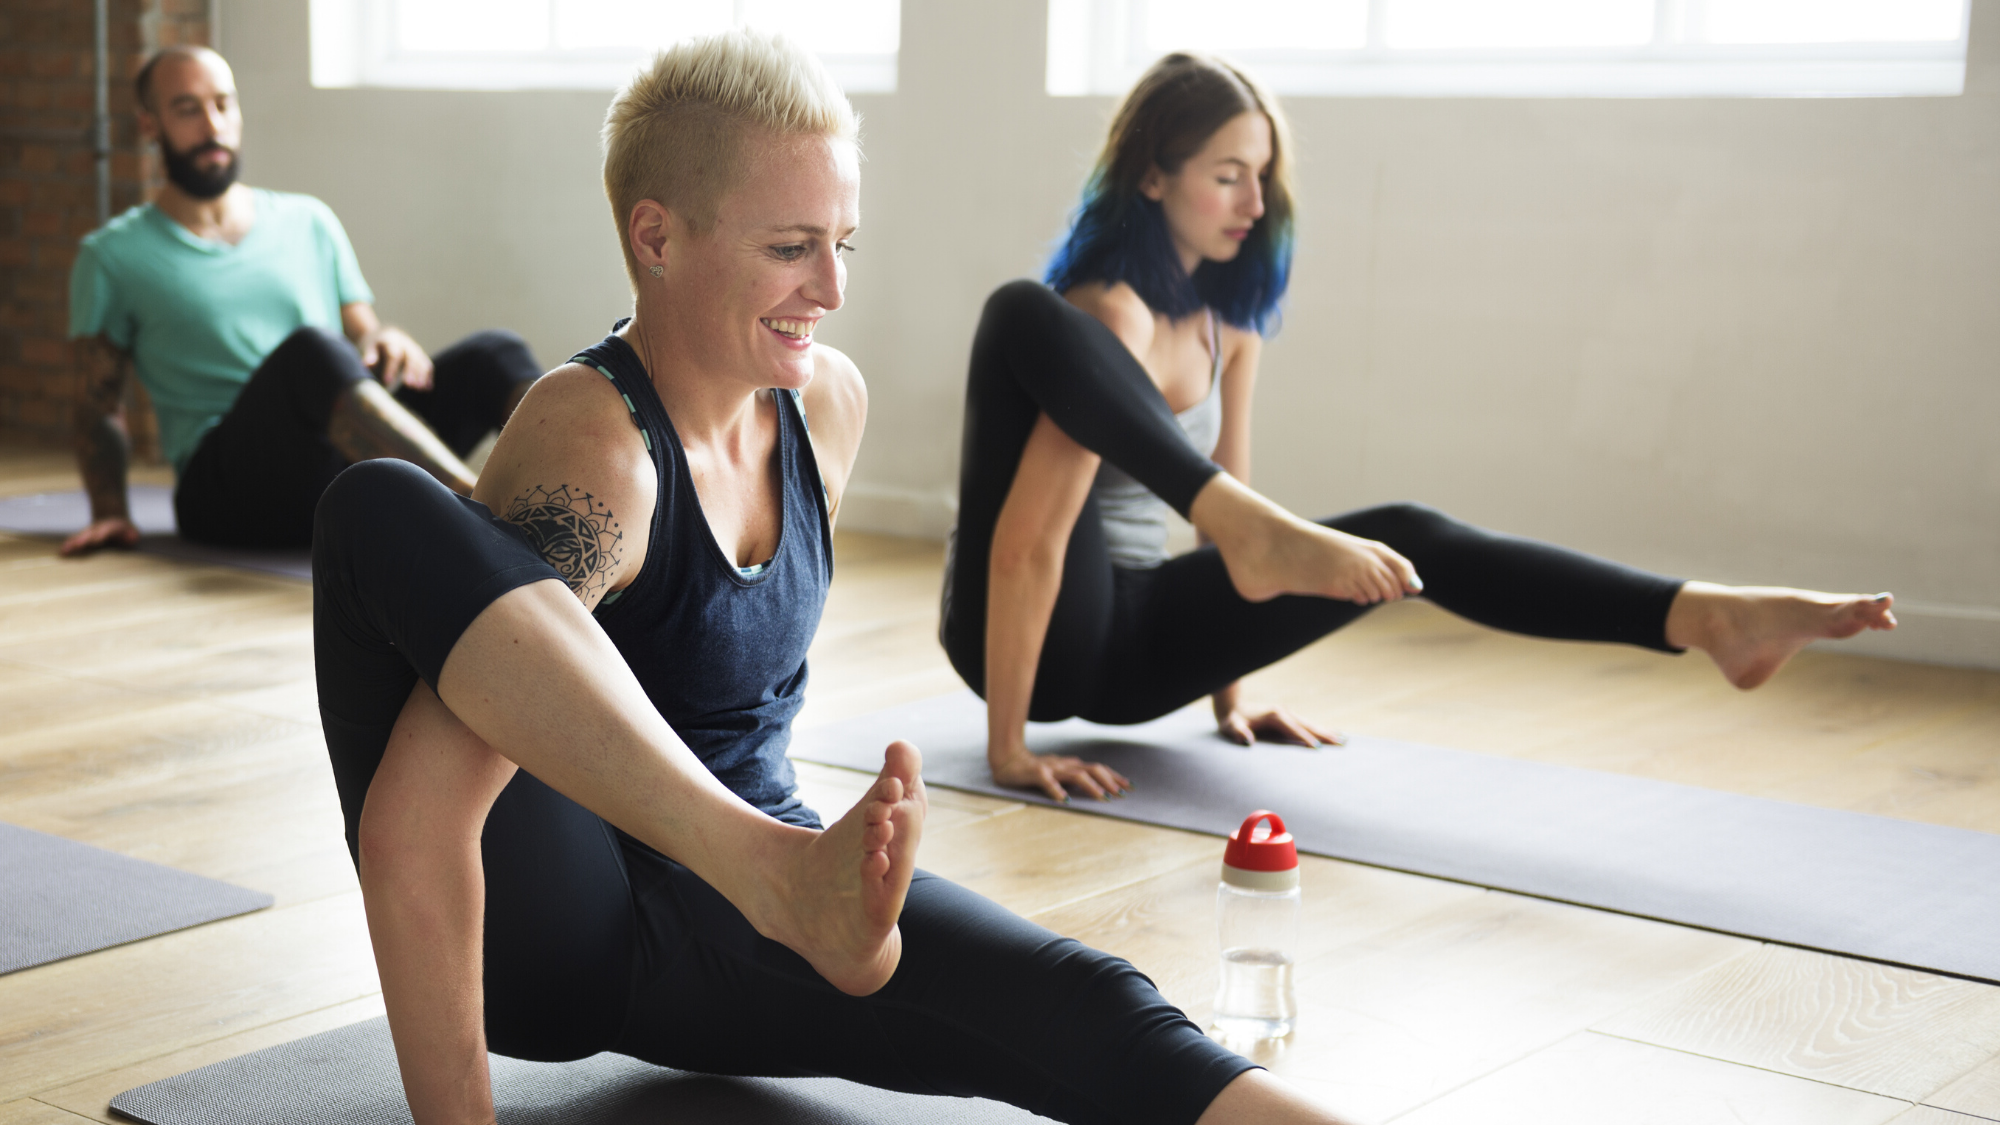 Woman practicing complicated yoga pose with diverse group of yoga students.